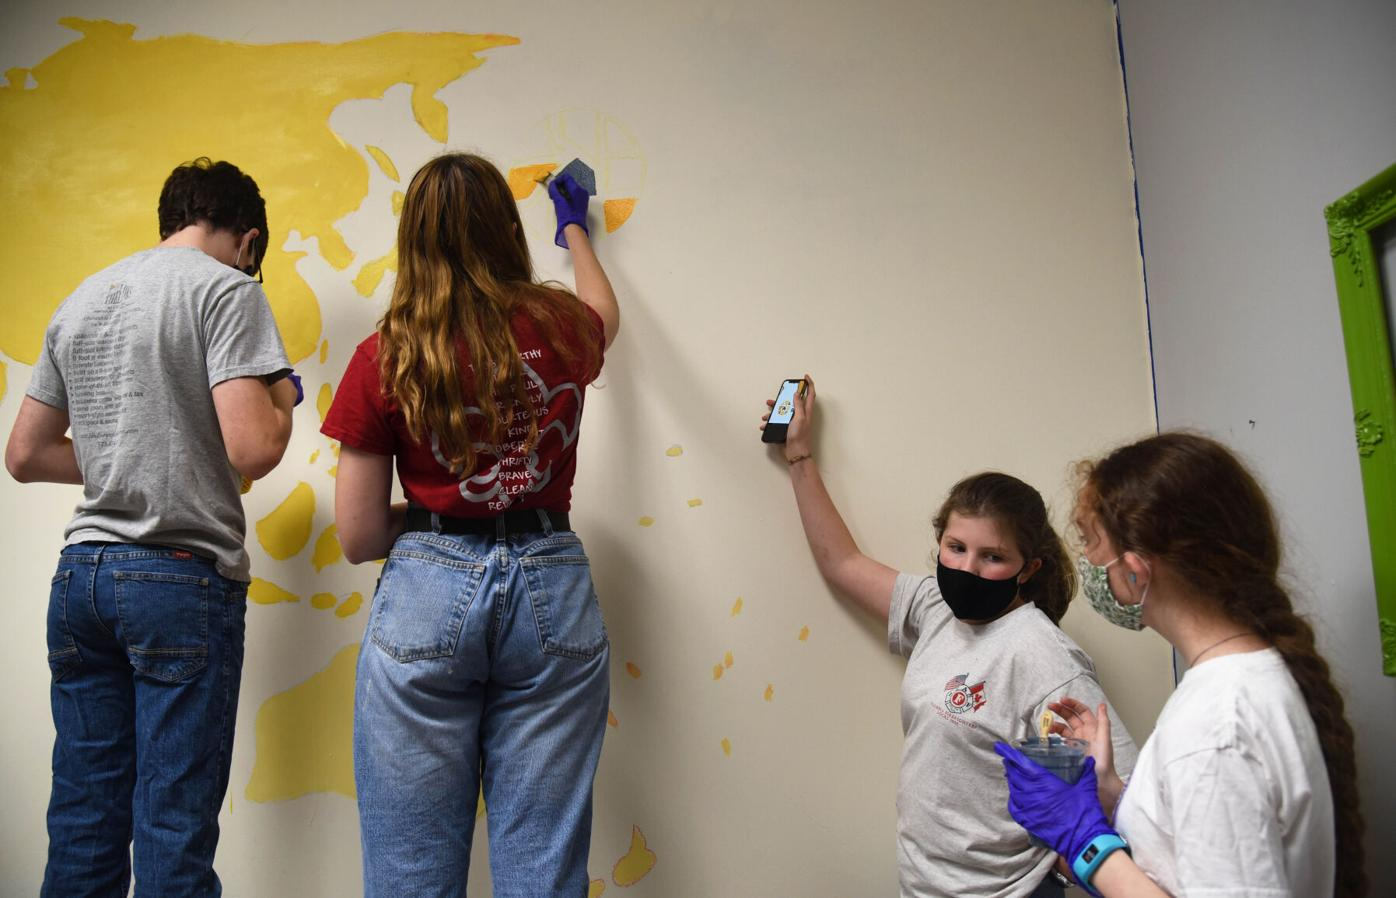 Miles Schroeder, Sophie Froese, Elizabeth Odette and Erica Schroeder assist in painting